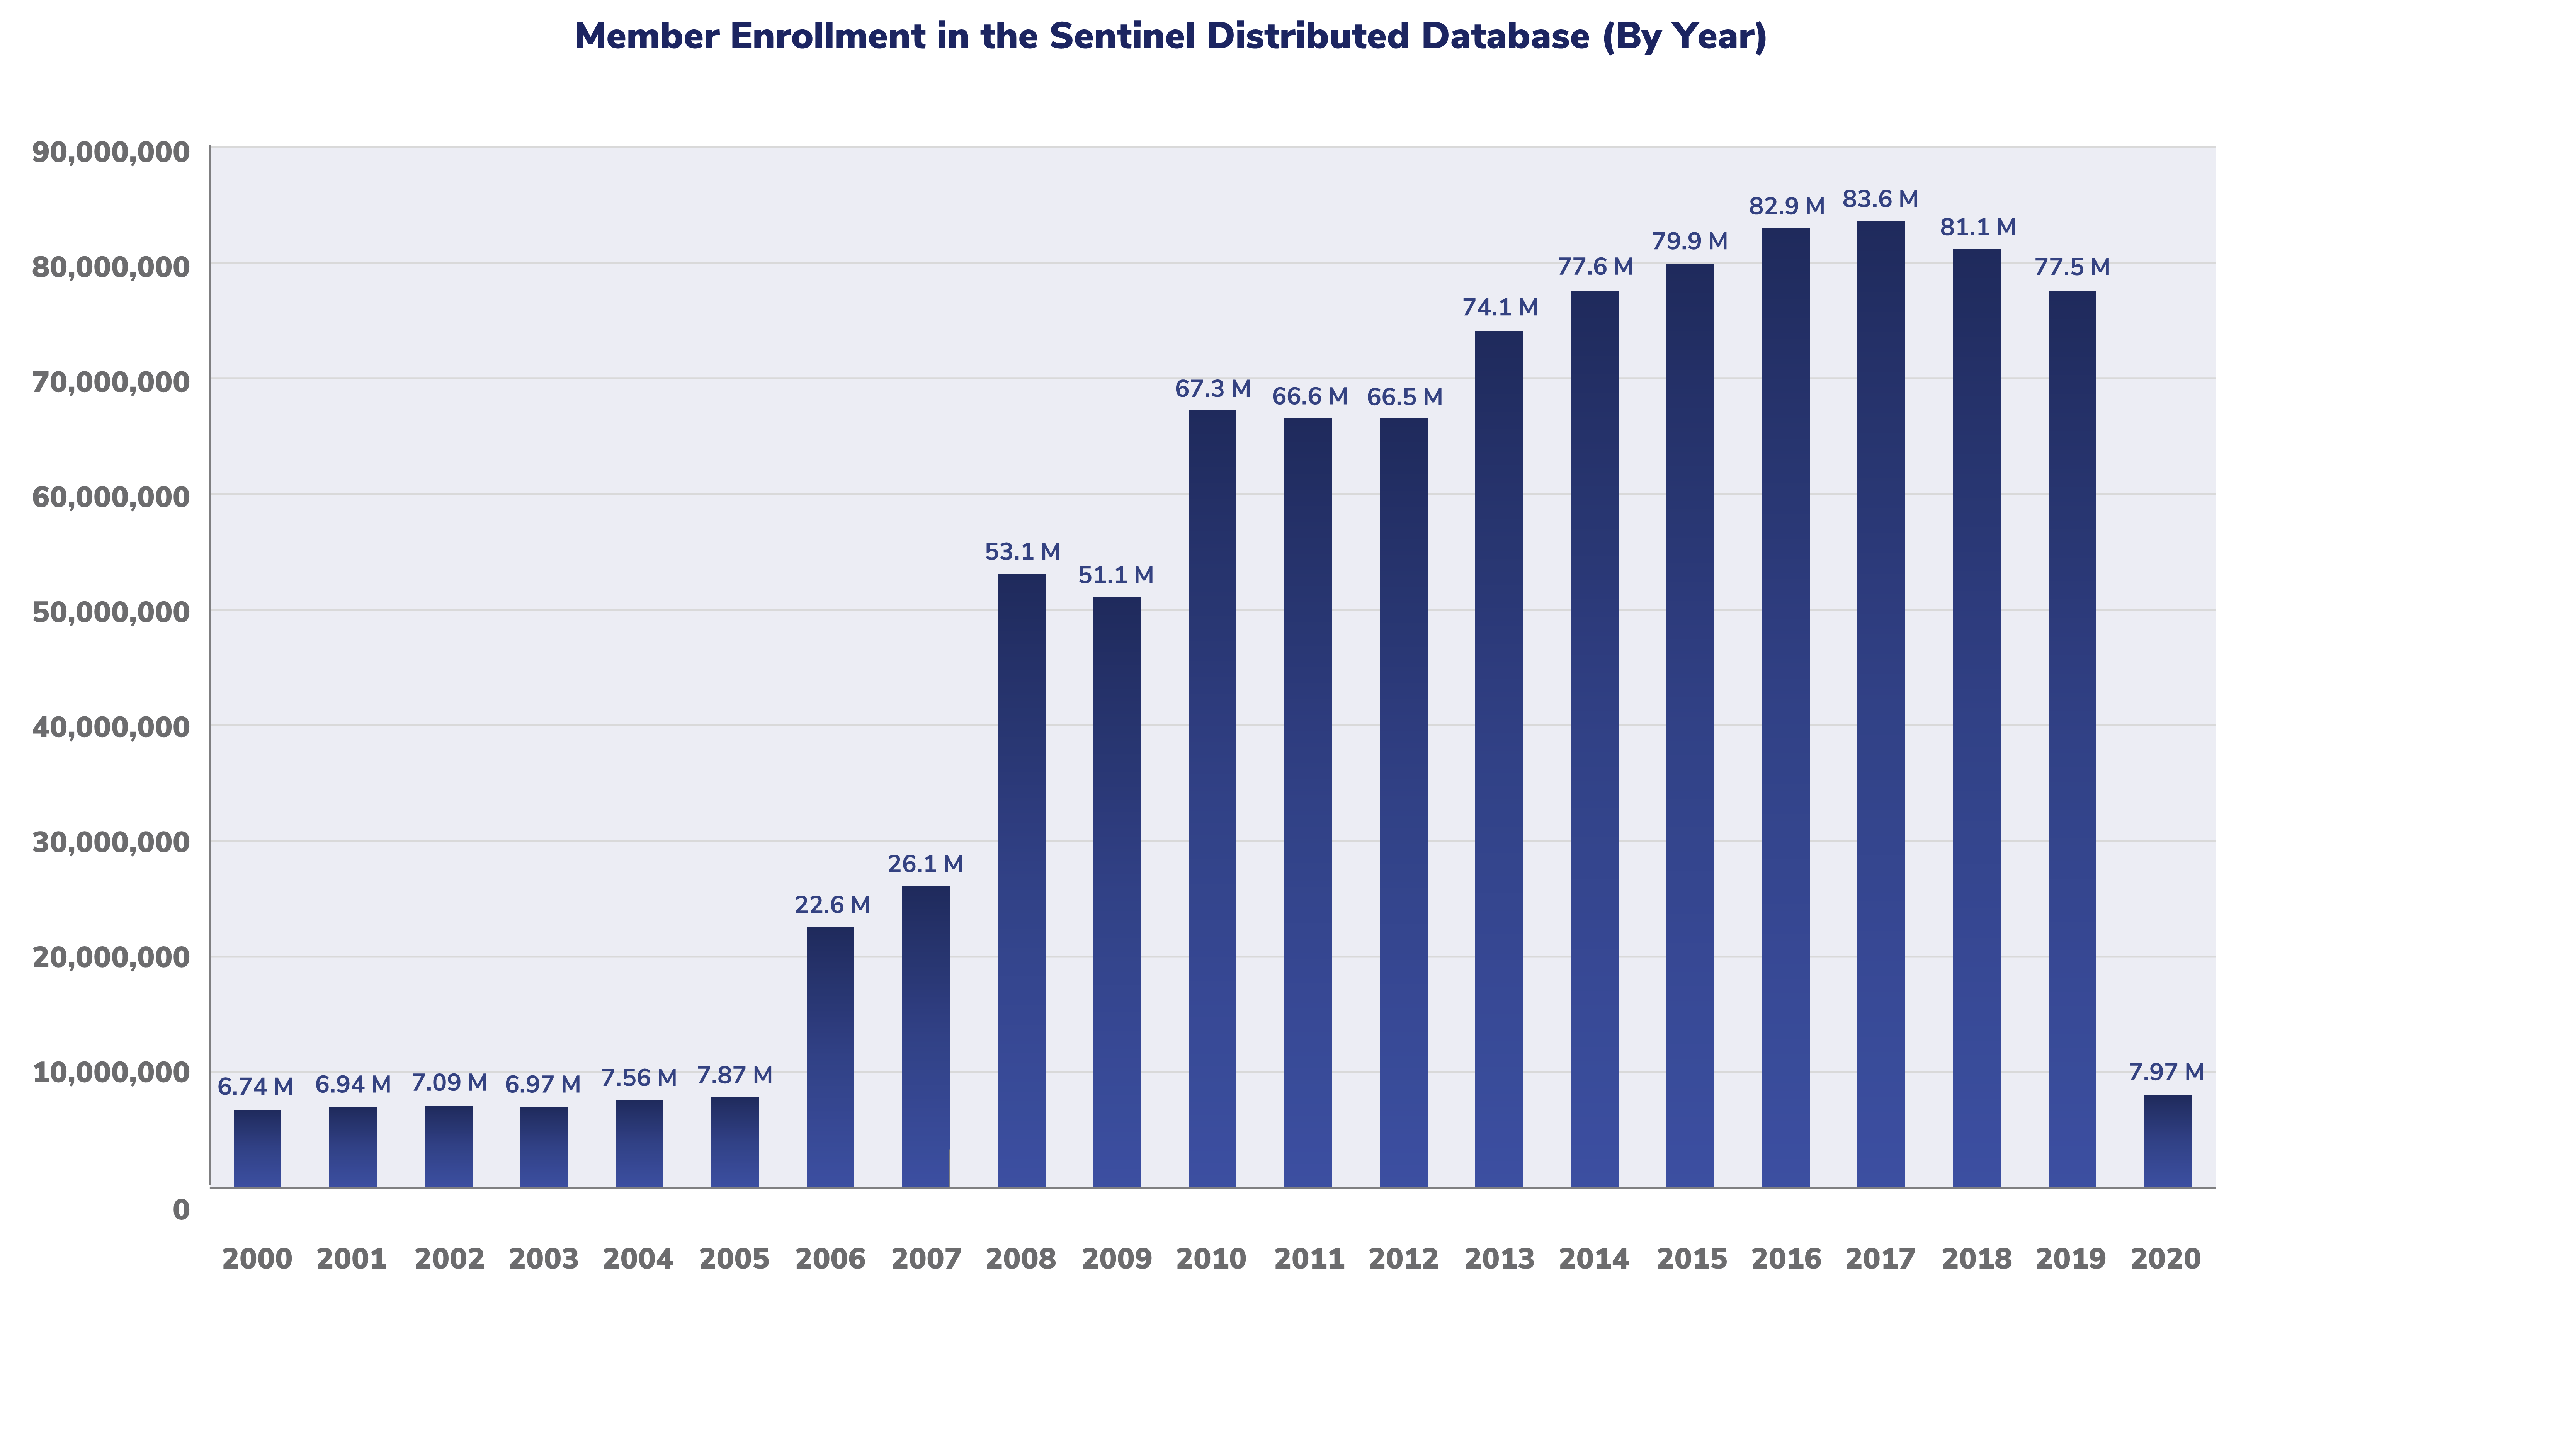 This graph shows the number of members with enrollment in the Sentinel Distributed Database over time.